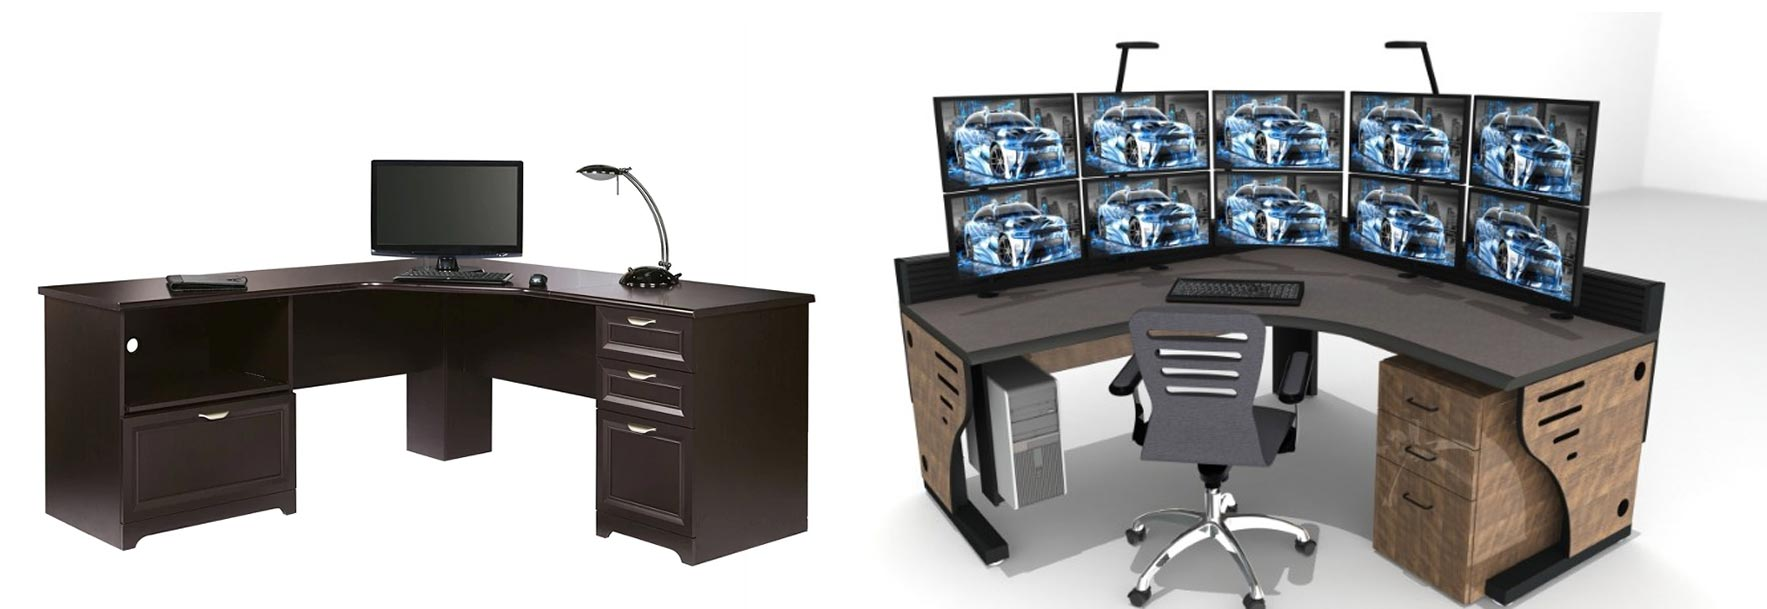 Control room desk vs specialized furniture comparison